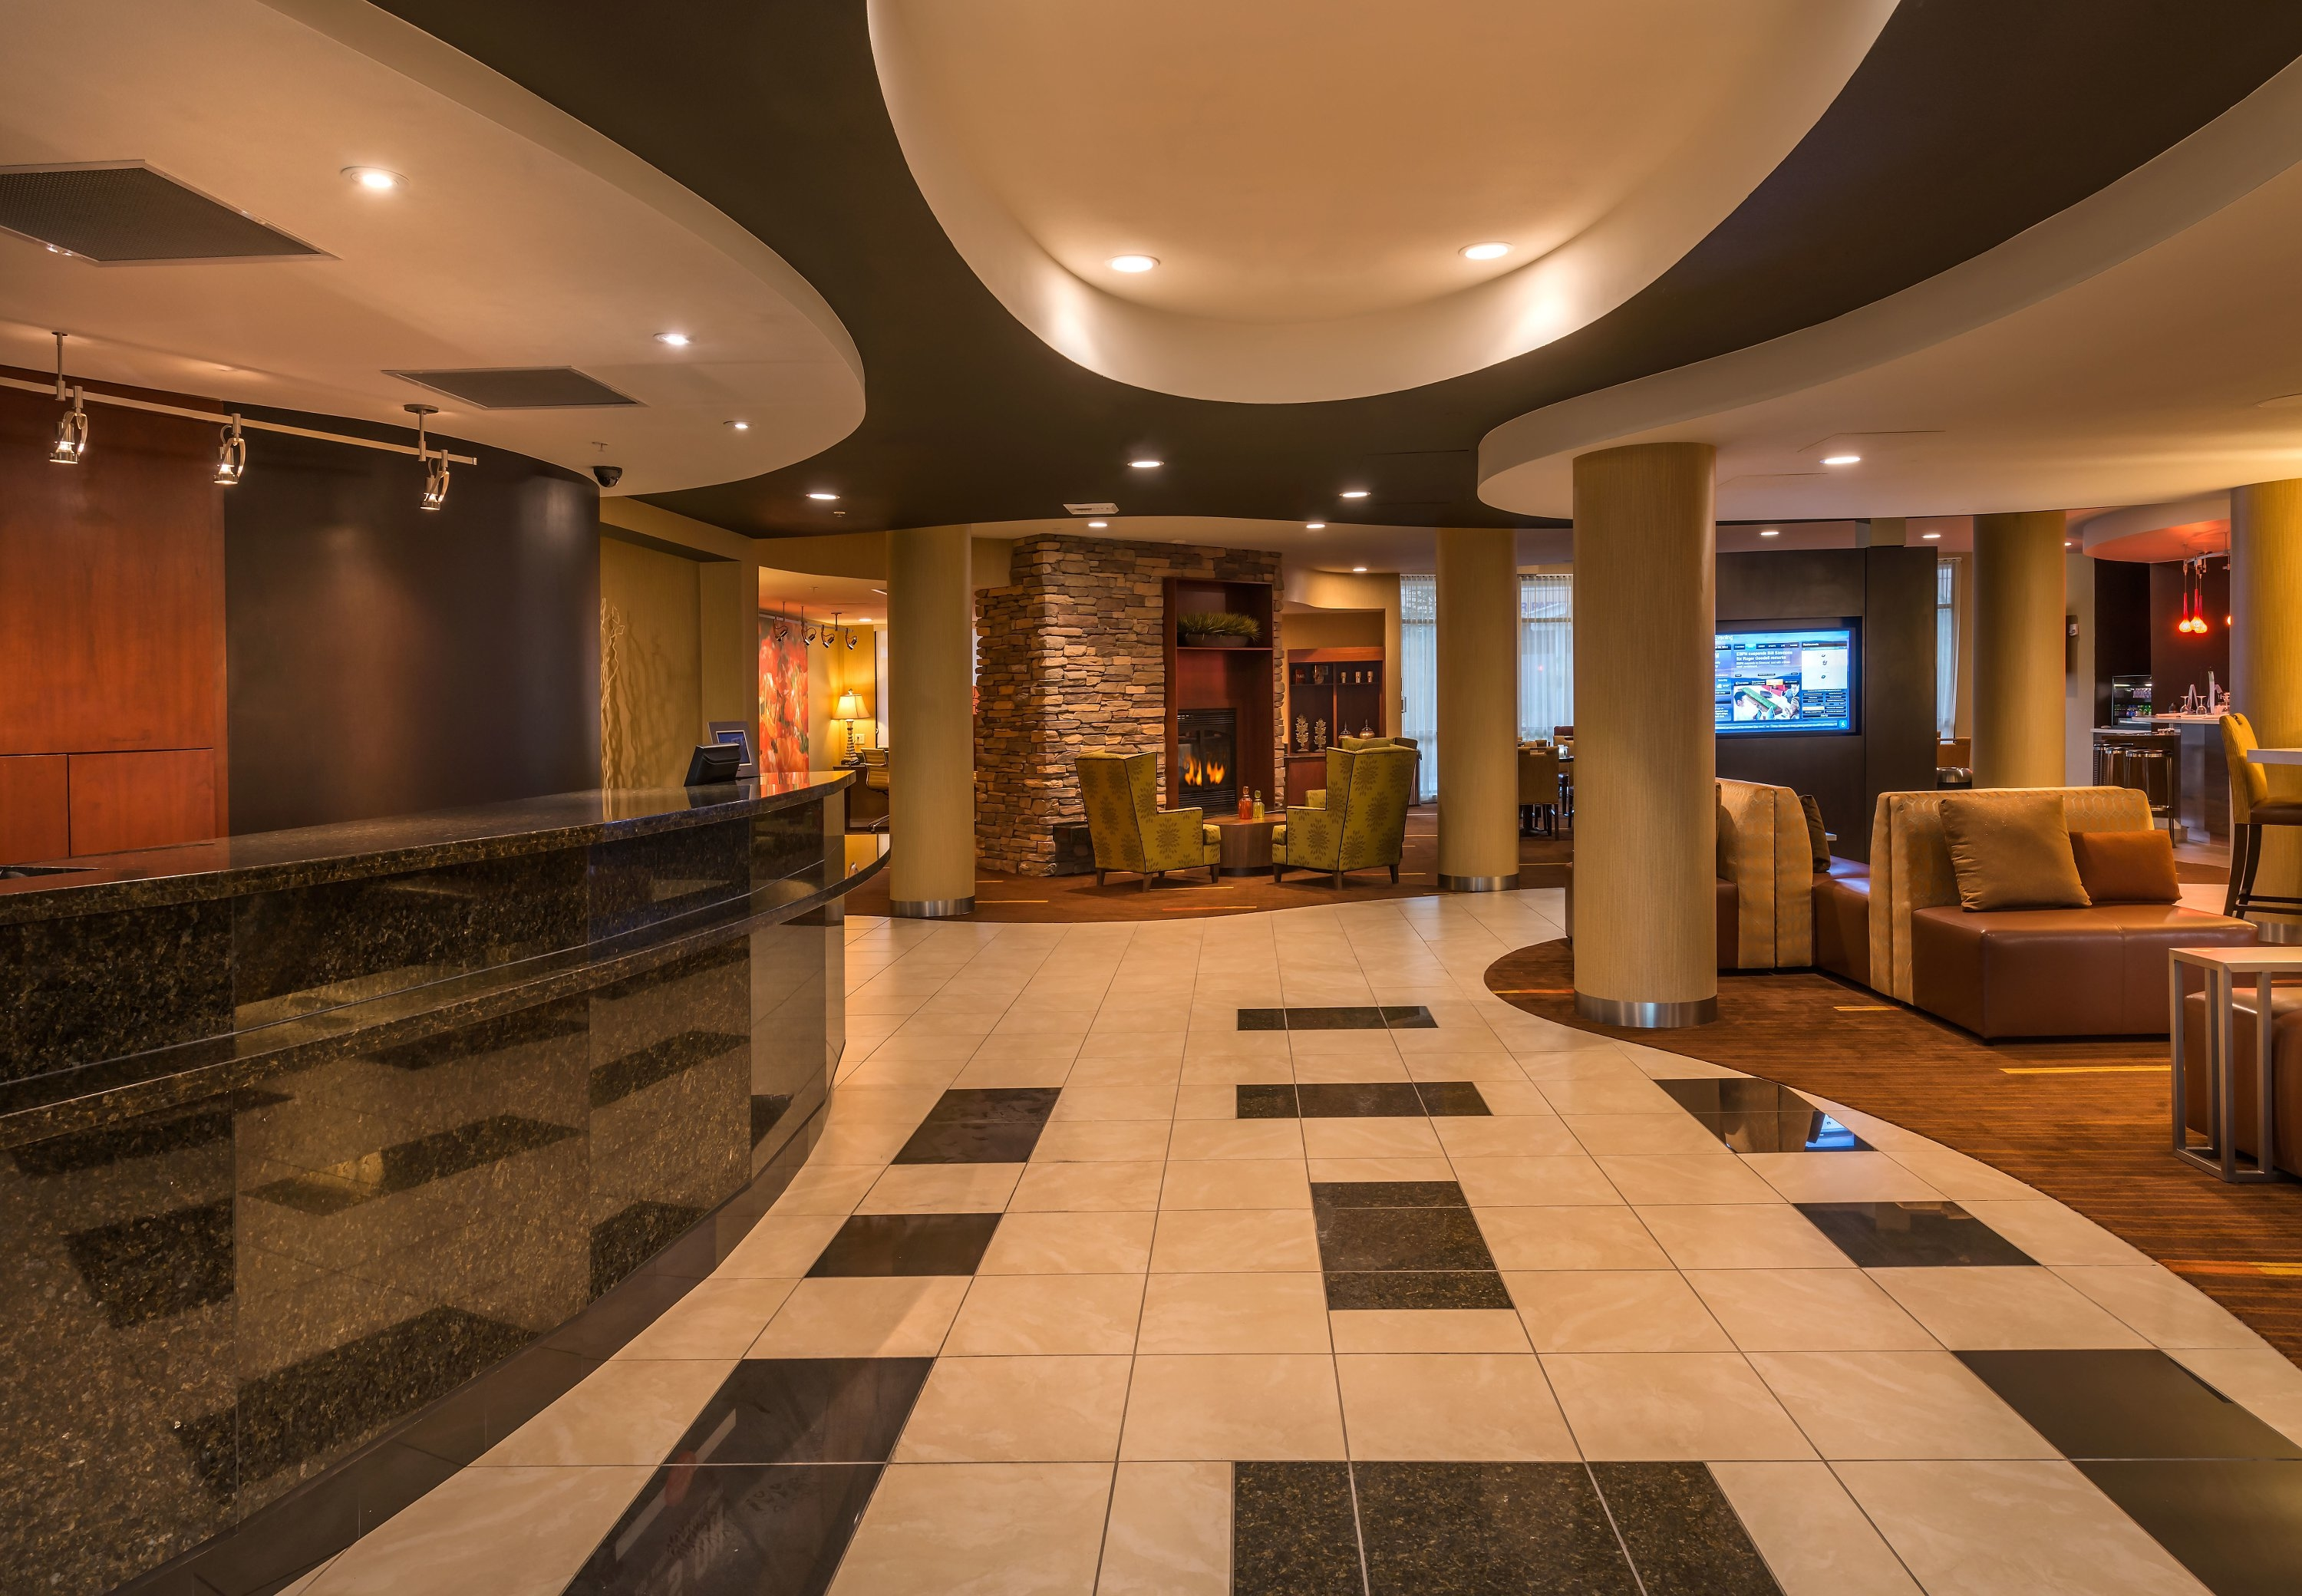 Courtyard by Marriott Carson City image 9